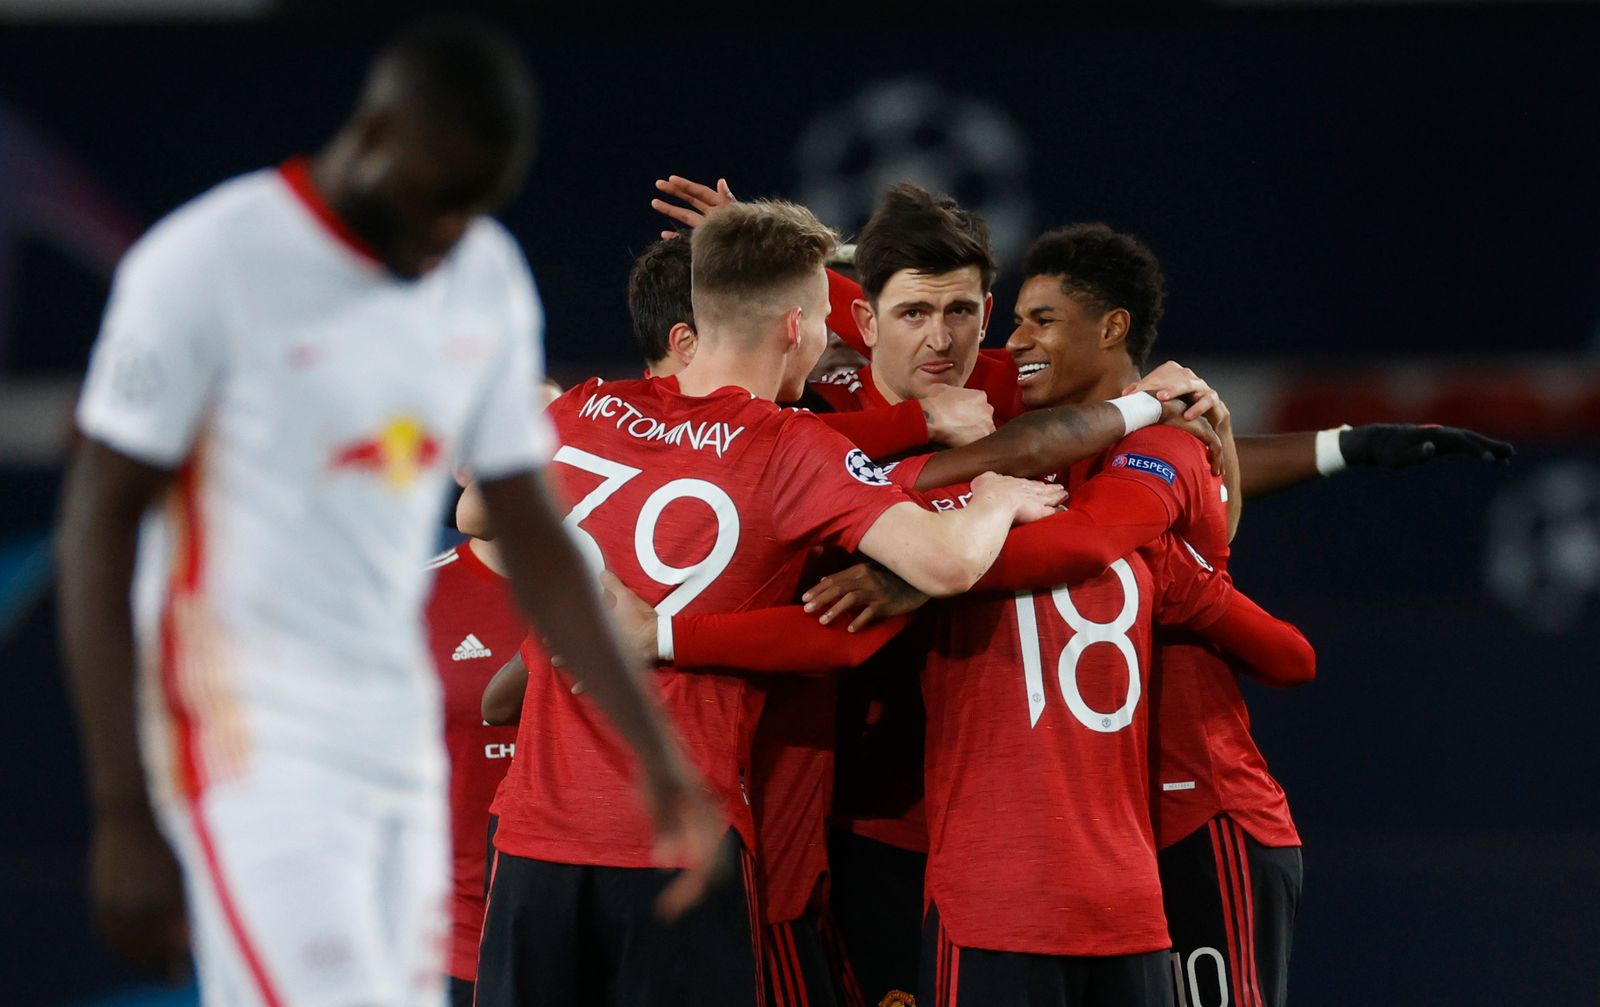 Champions League - Group H - Manchester United v RB Leipzig